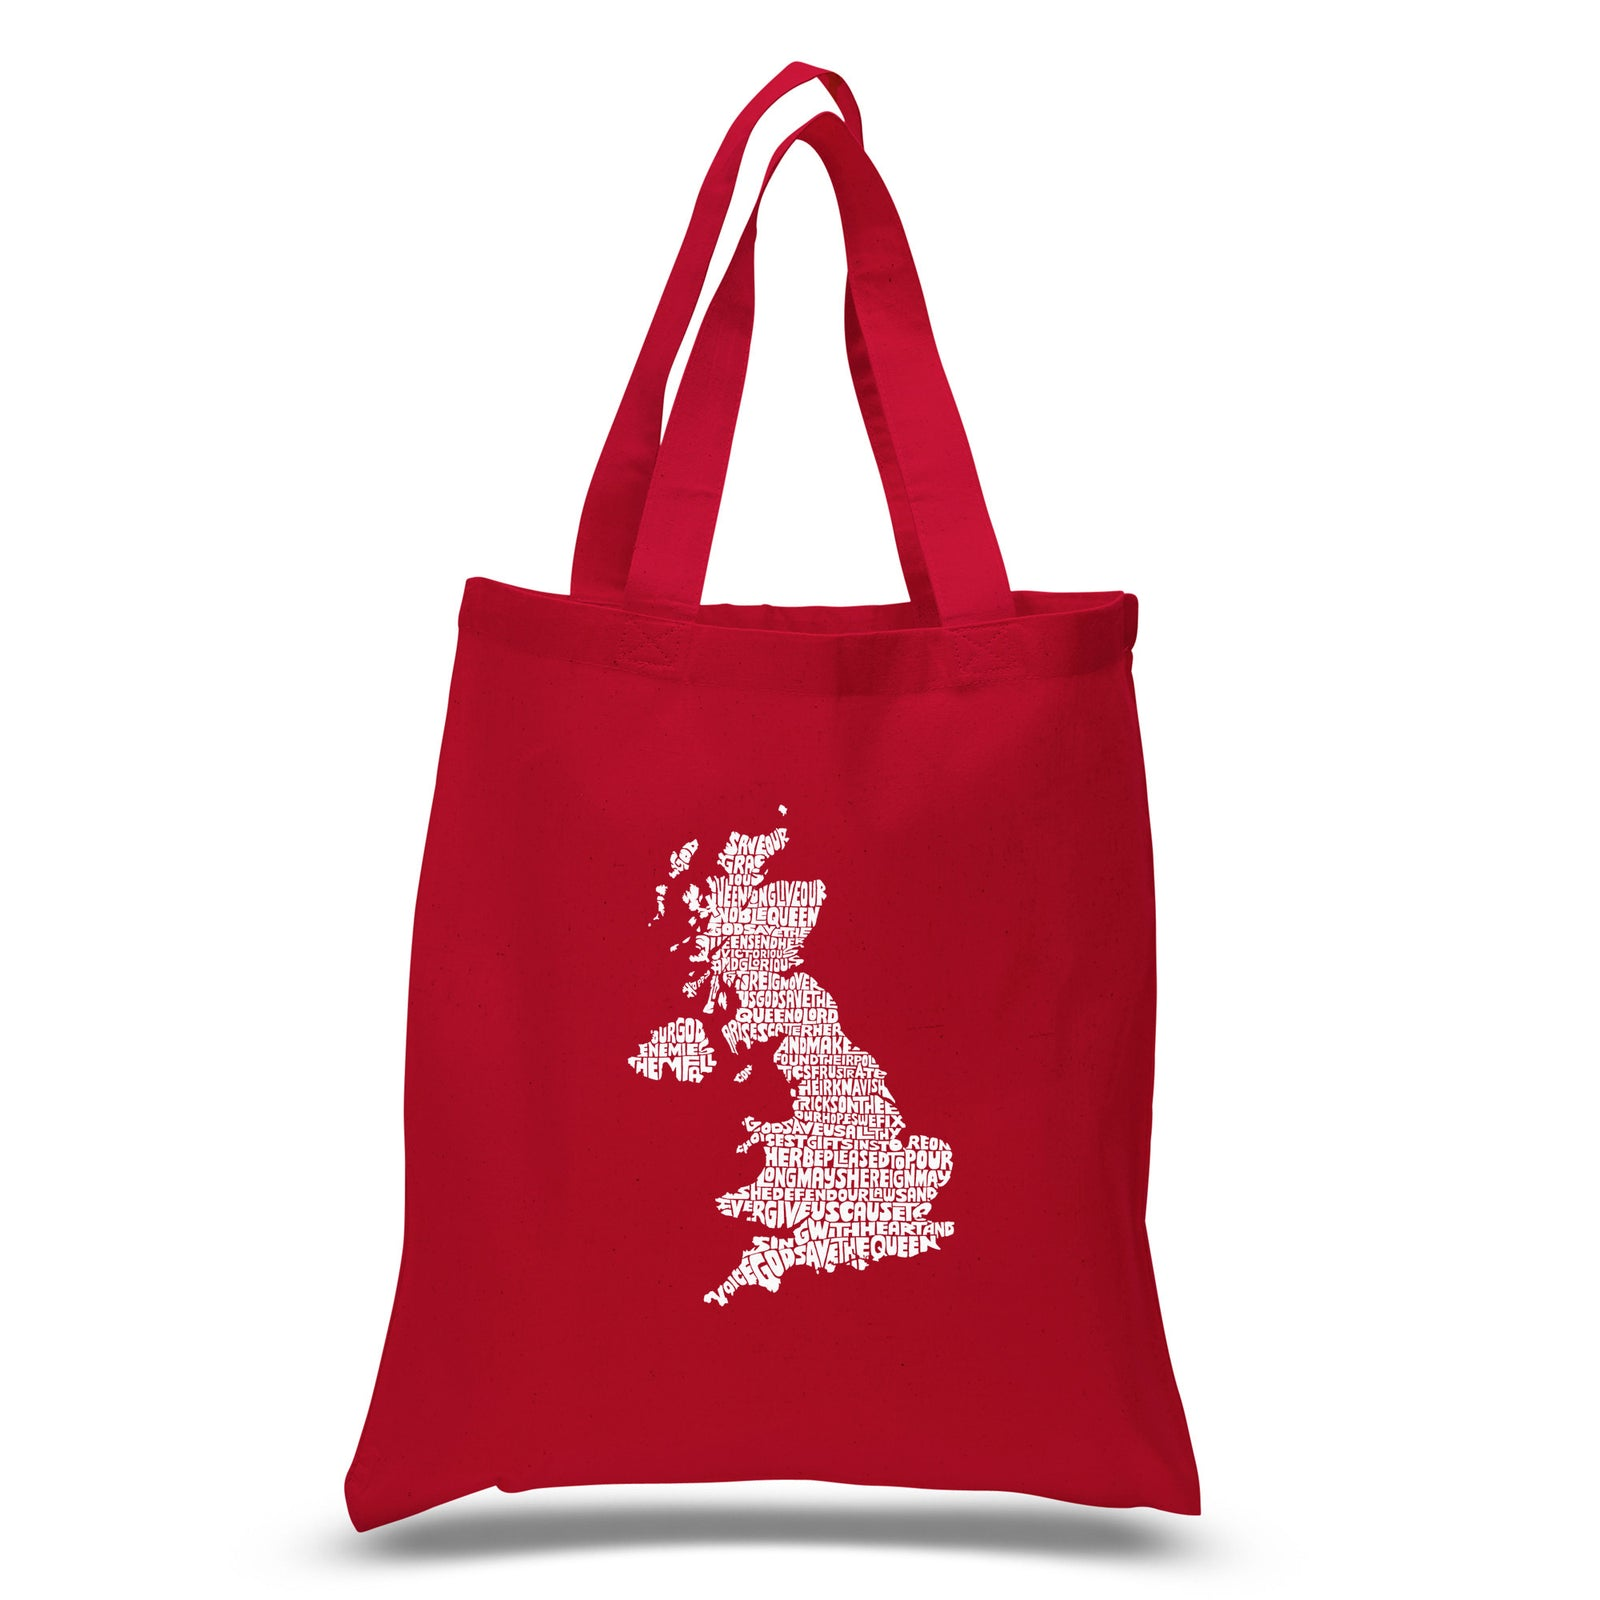 Small Tote Bag - GOD SAVE THE QUEEN